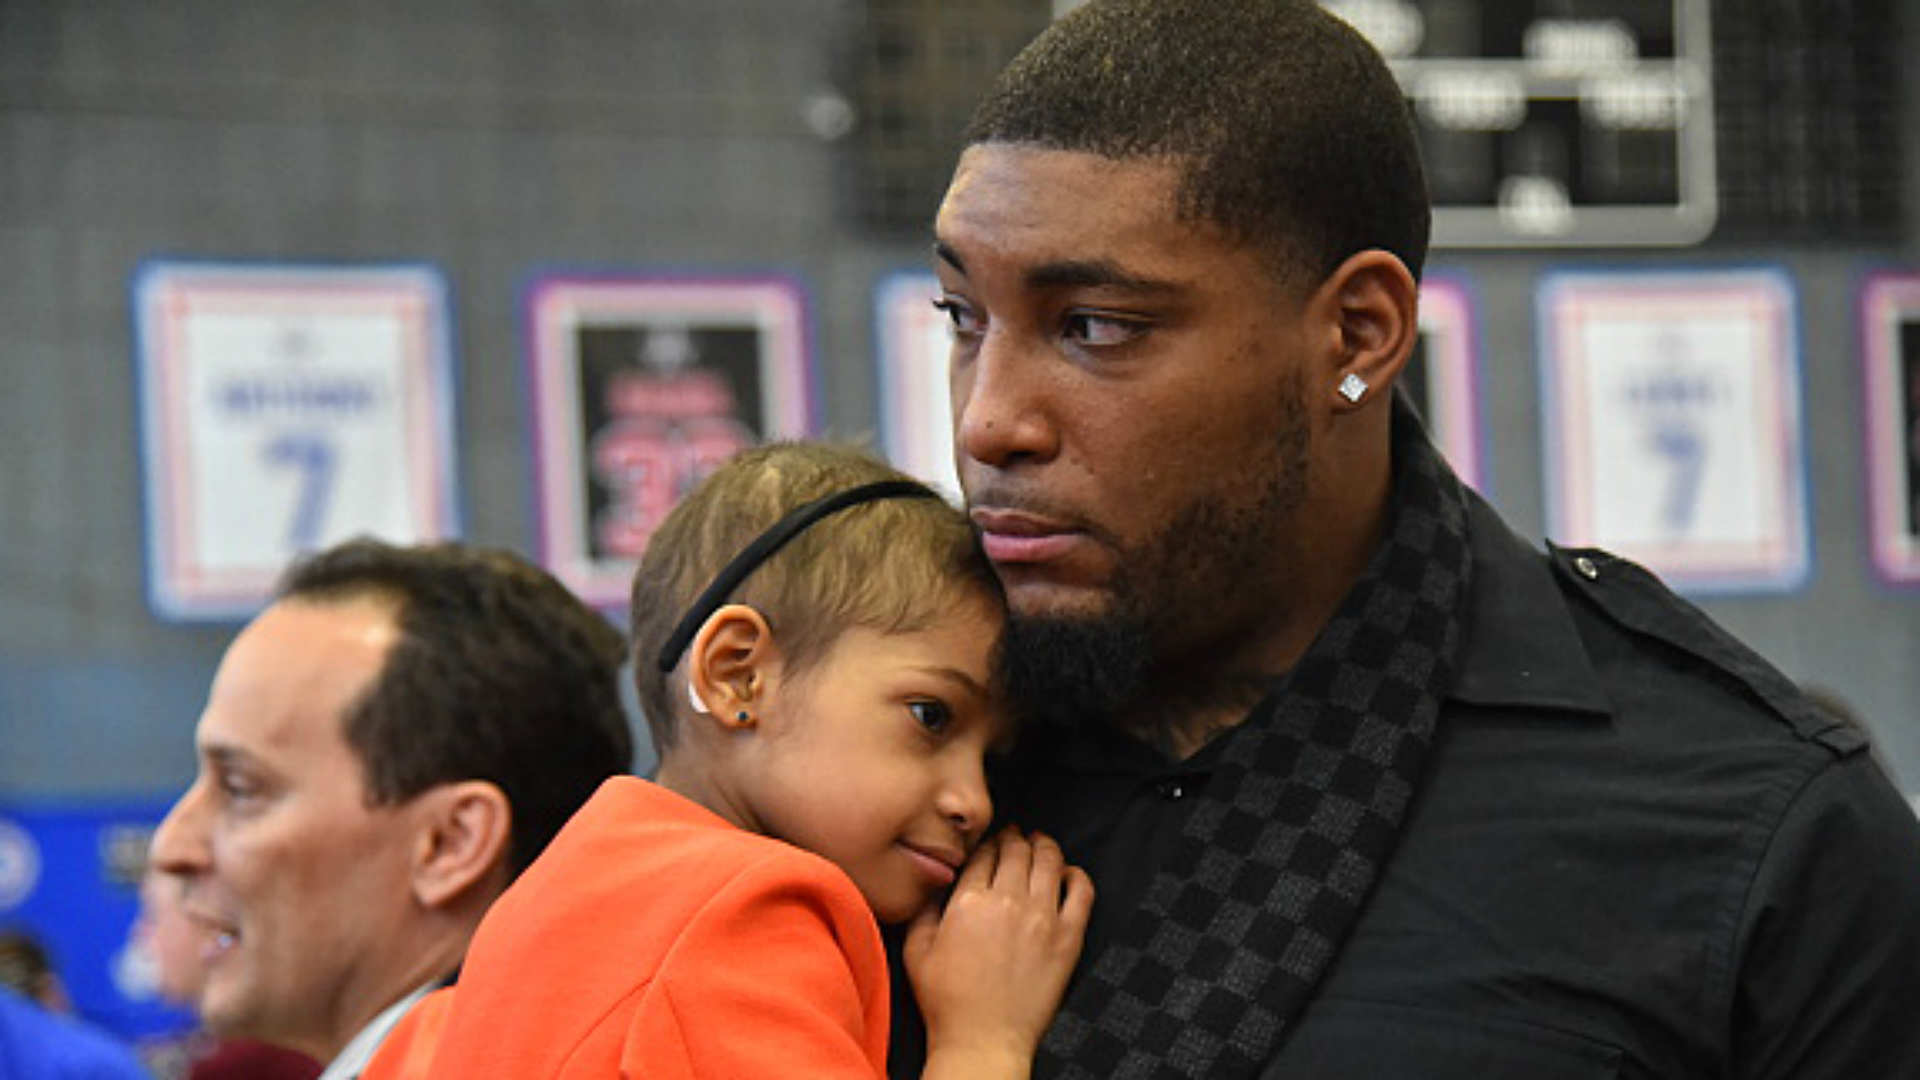 Leah Still, daughter of Bengals DT Devon Still, hits 'serious complication'